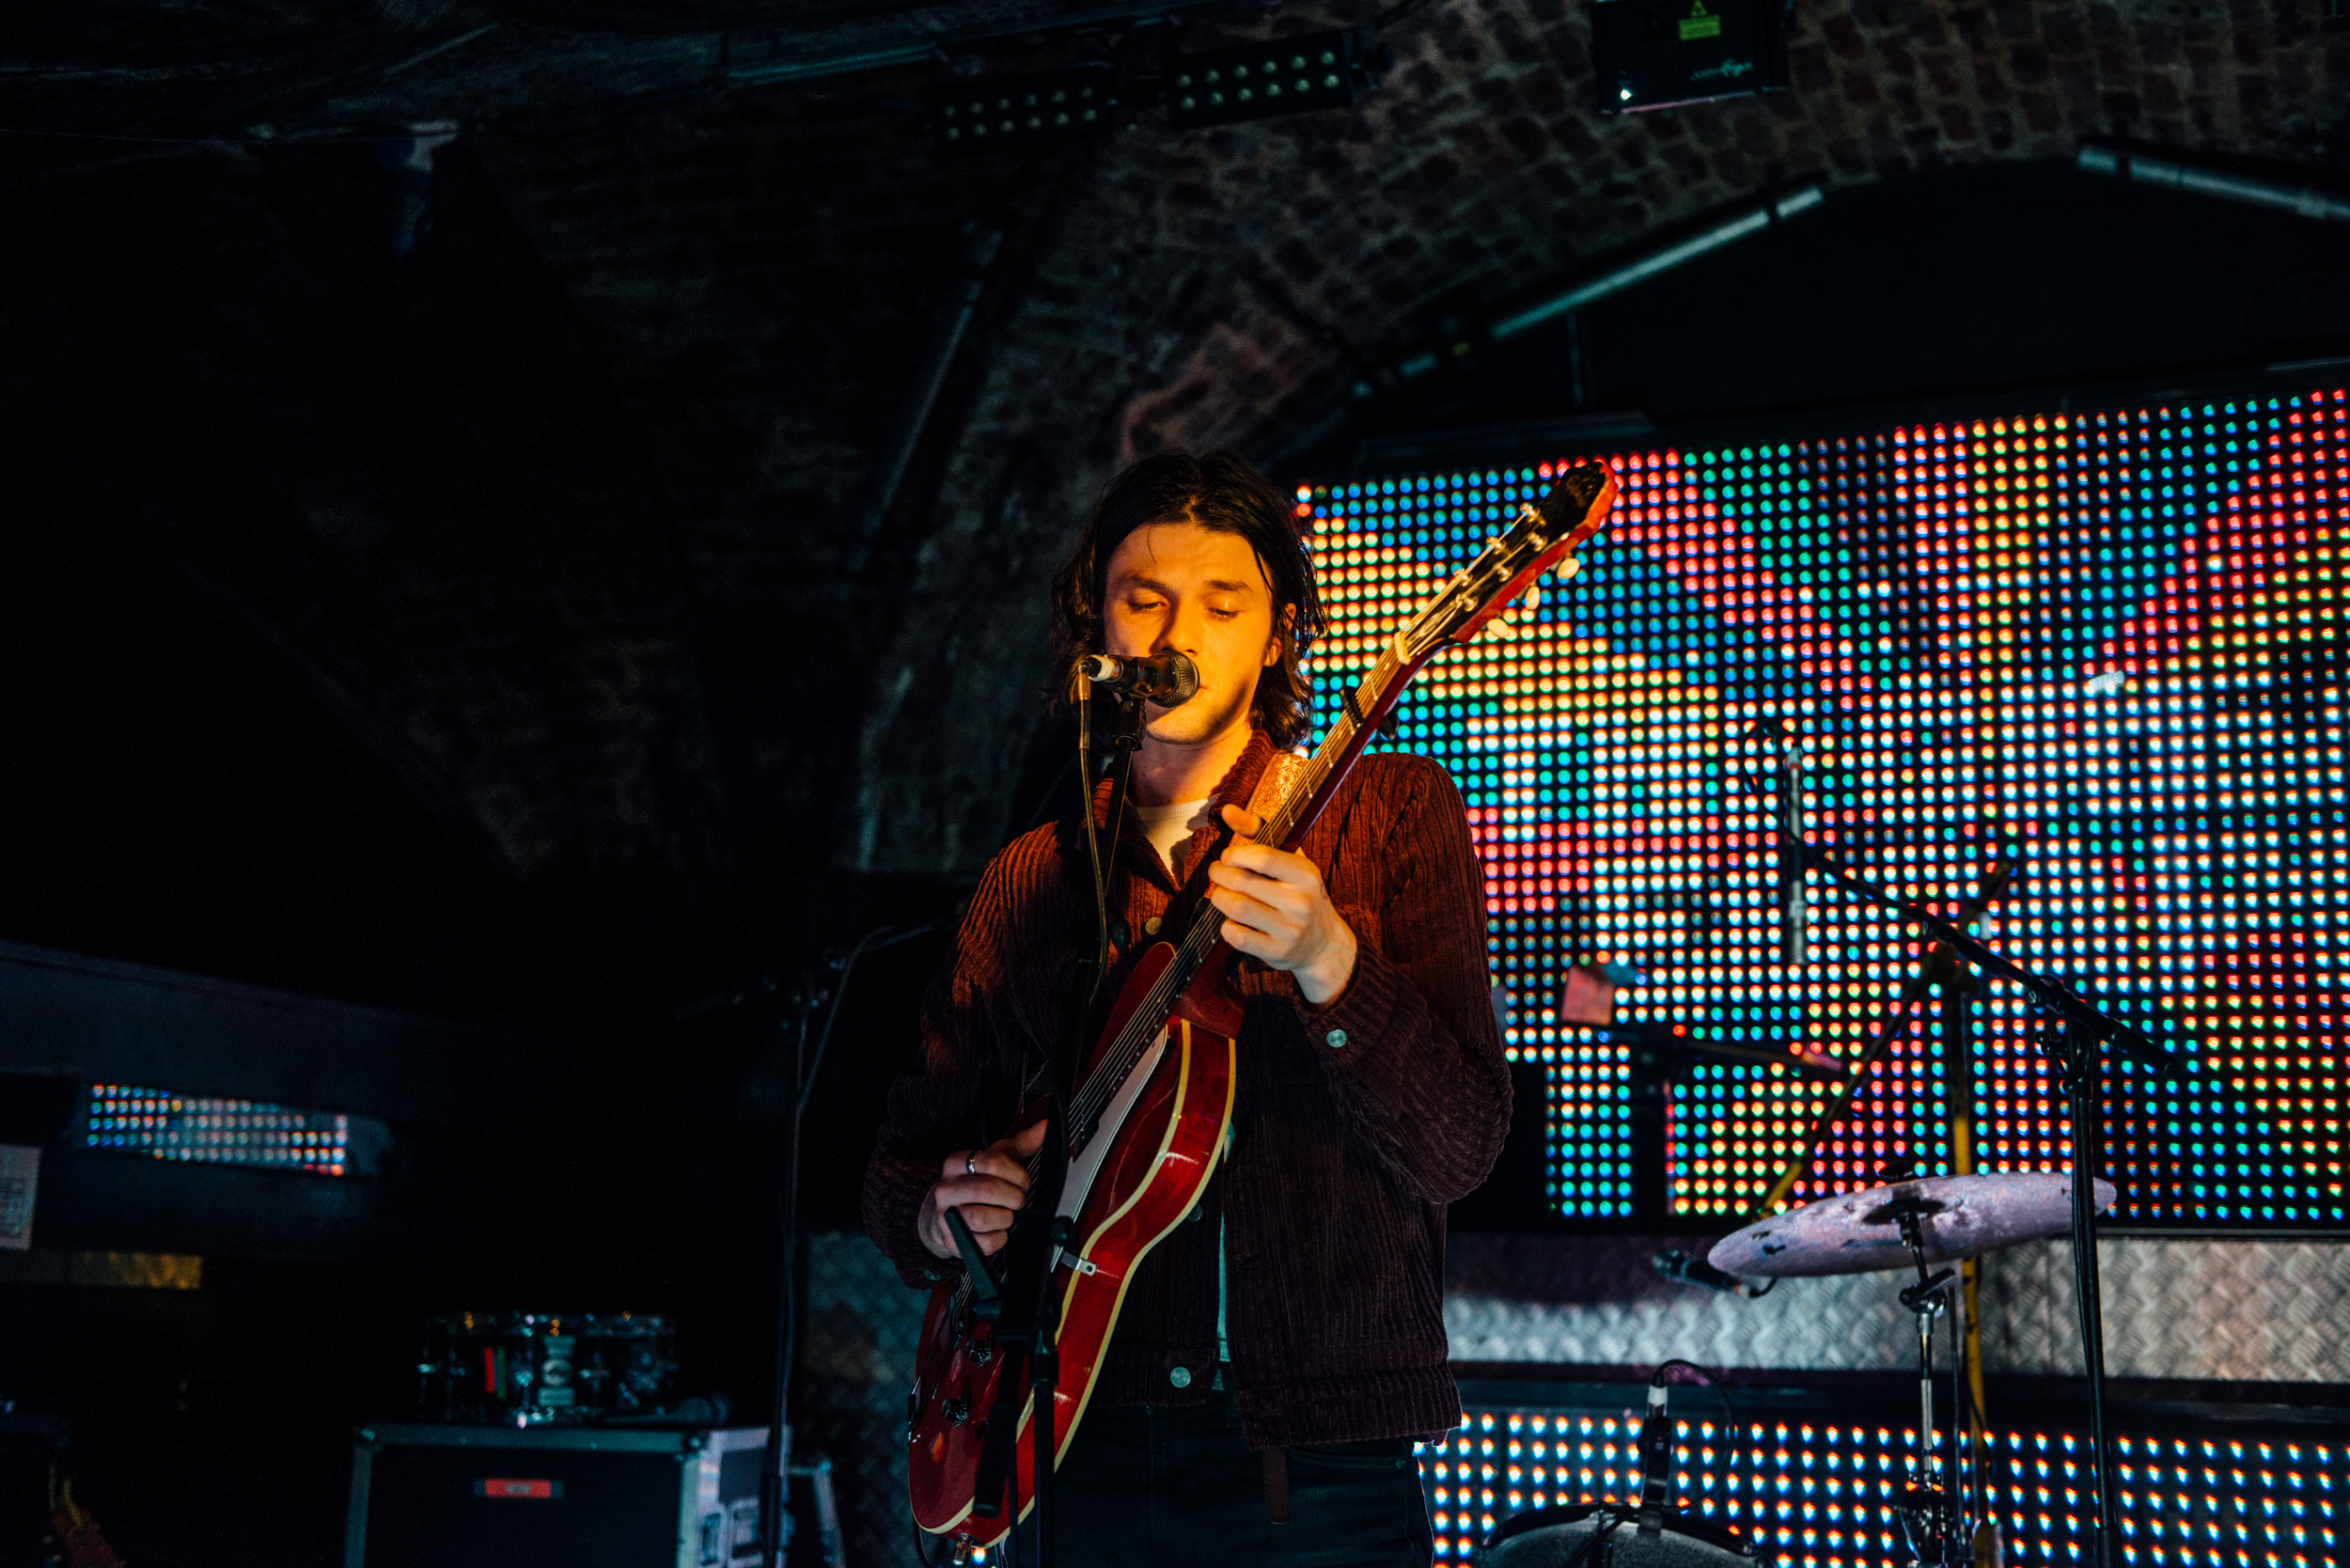 James Bay at The Great Escape - Photo Patrick Gunning